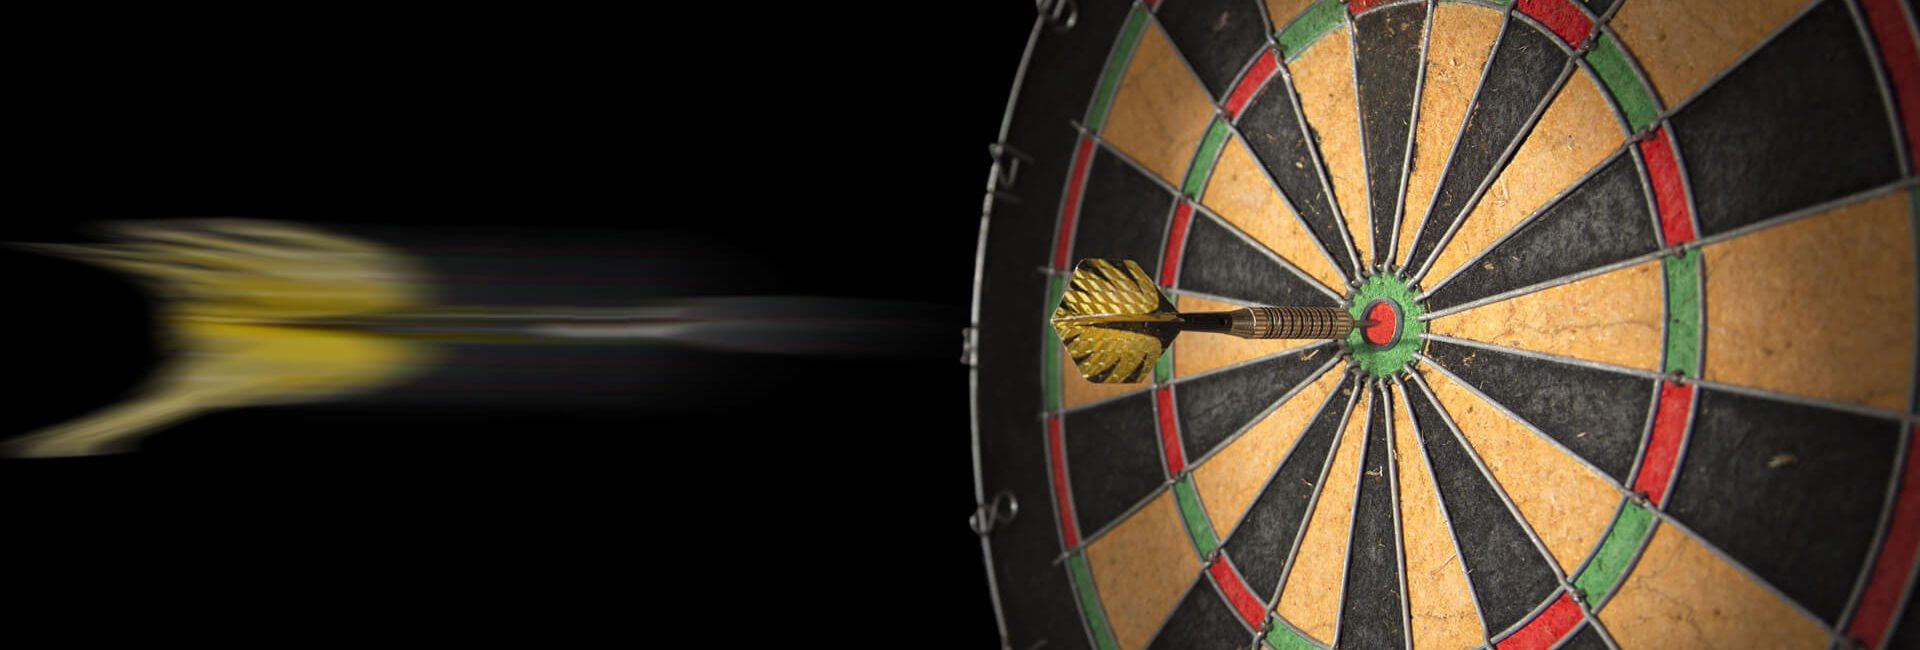 Game of darts - pub games - Gasterij 't Karrewiel